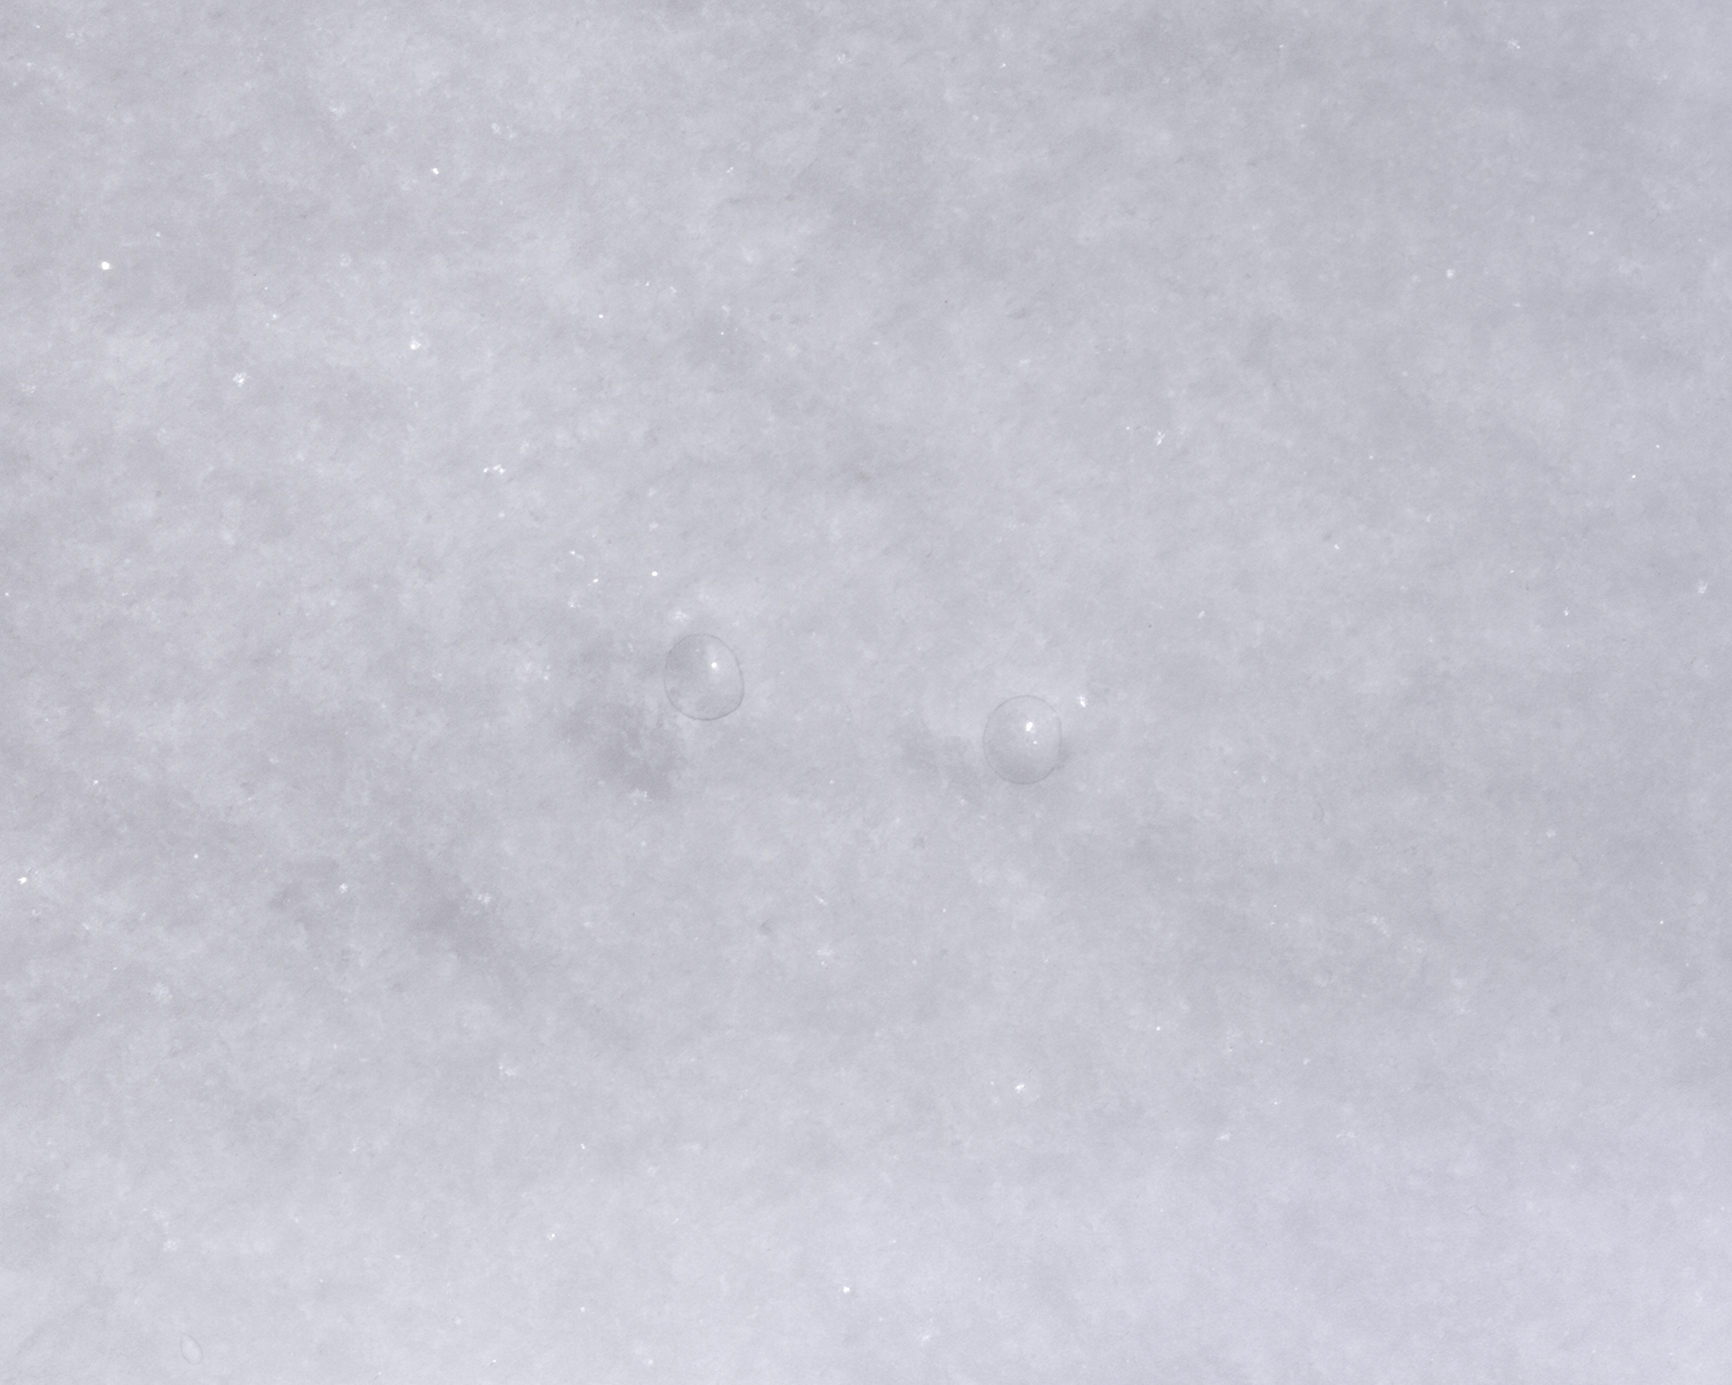 title variable (lenses, snow)